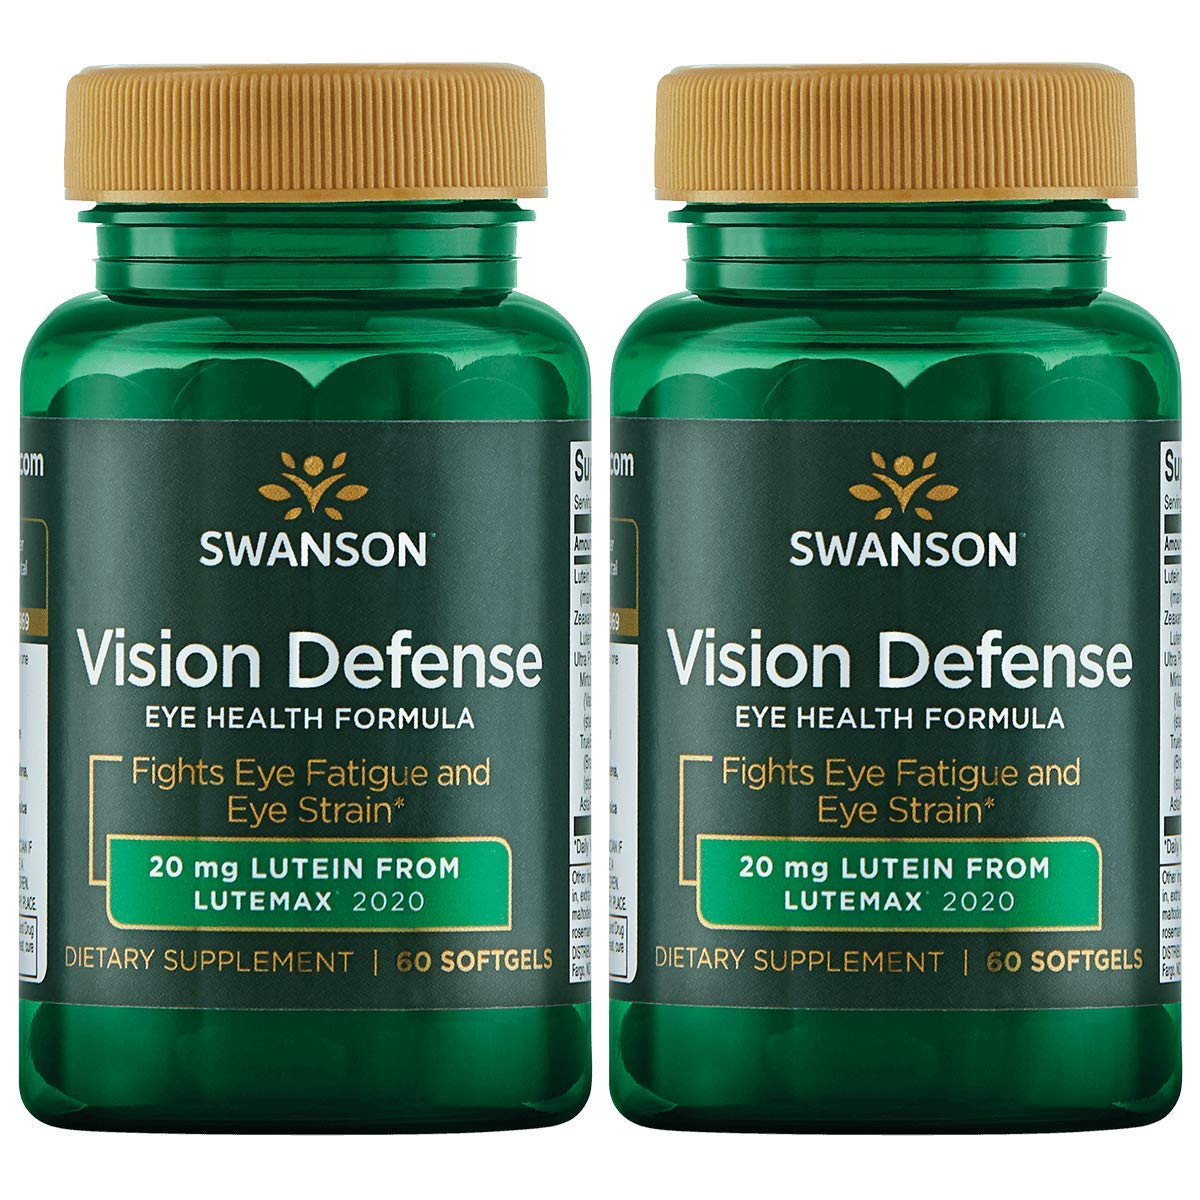 Swanson Vision Defense Antioxidant Vision Health Supplement Eye Fatigue Eye Strain Blue Light Defense Lutein Zeaxanthin Astaxanthin Broccoli Extract Bilberry Extract 60 Softgels Sgels (2 Pack)